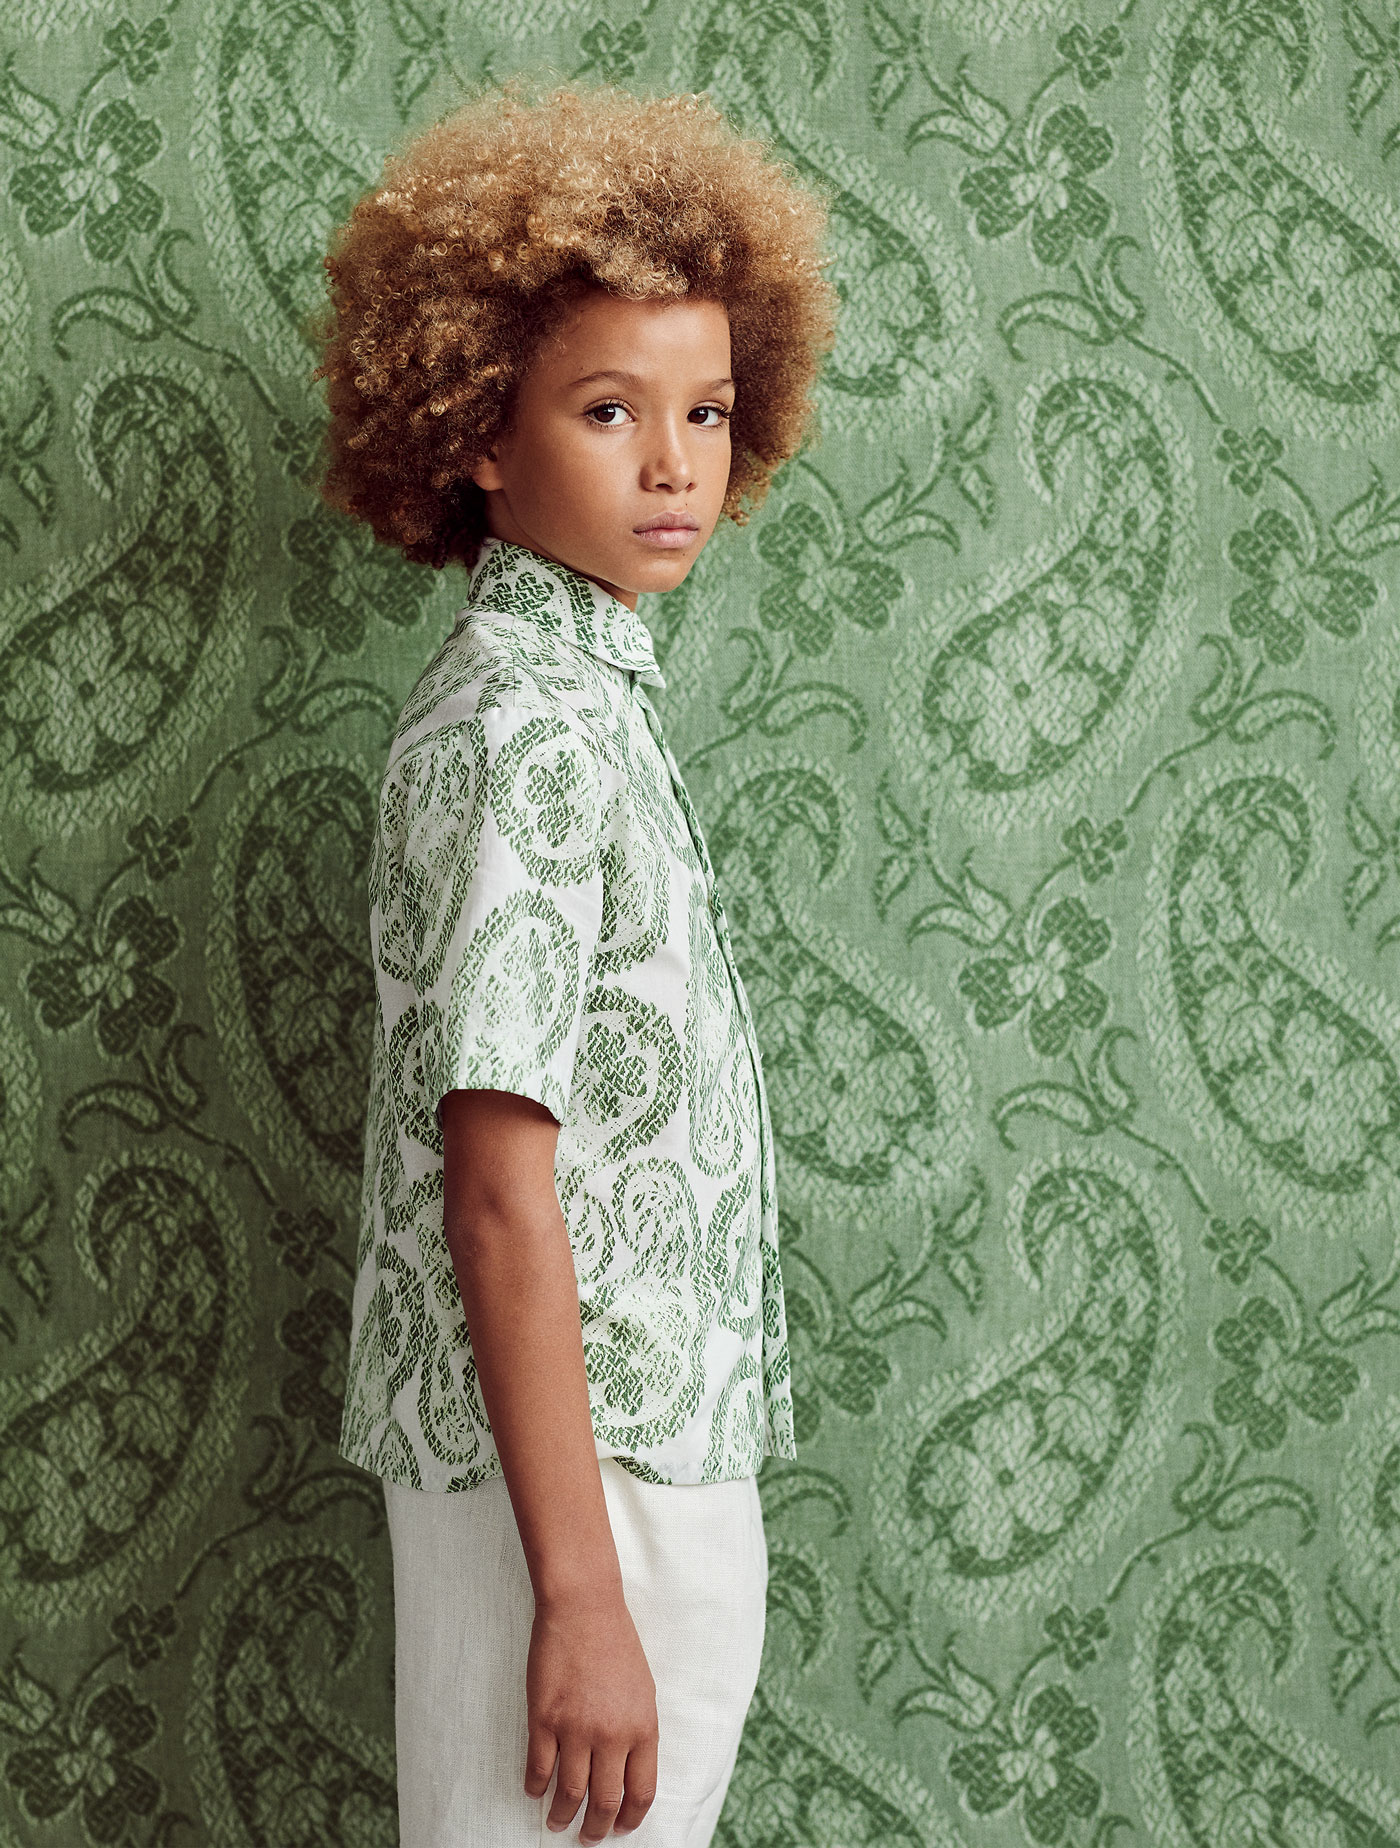 Wallpaper - Maharaja's Brocade in coriander :: Fabric - Worn Paisley large in coriander, custom printed on cotton poplin for this shoot.